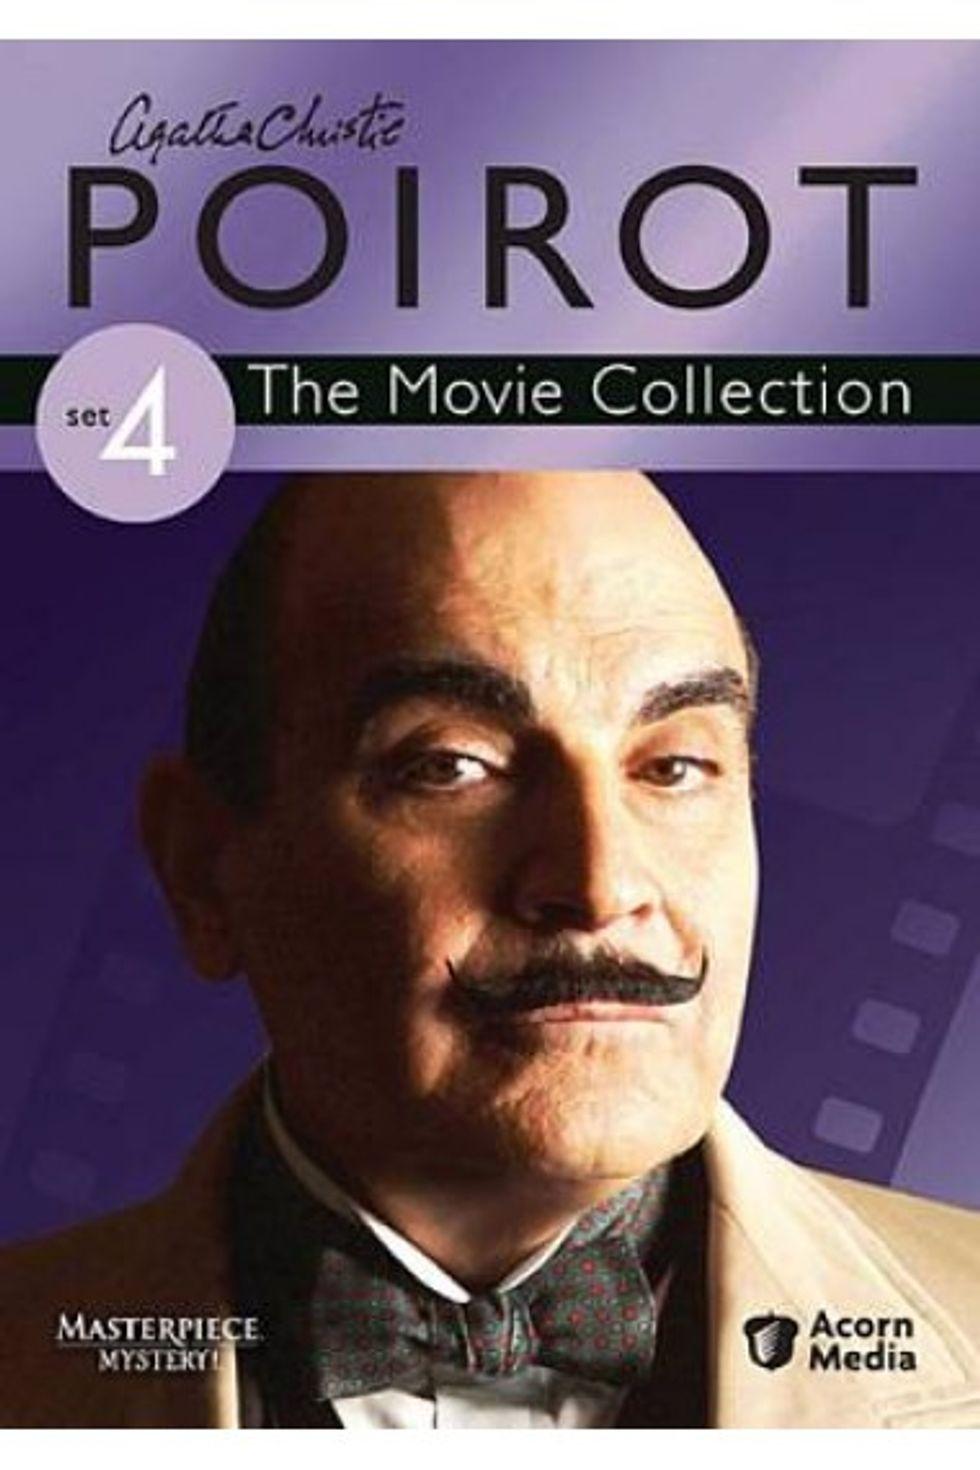 Poirot: The Movie Collection Set 4 On DVD!